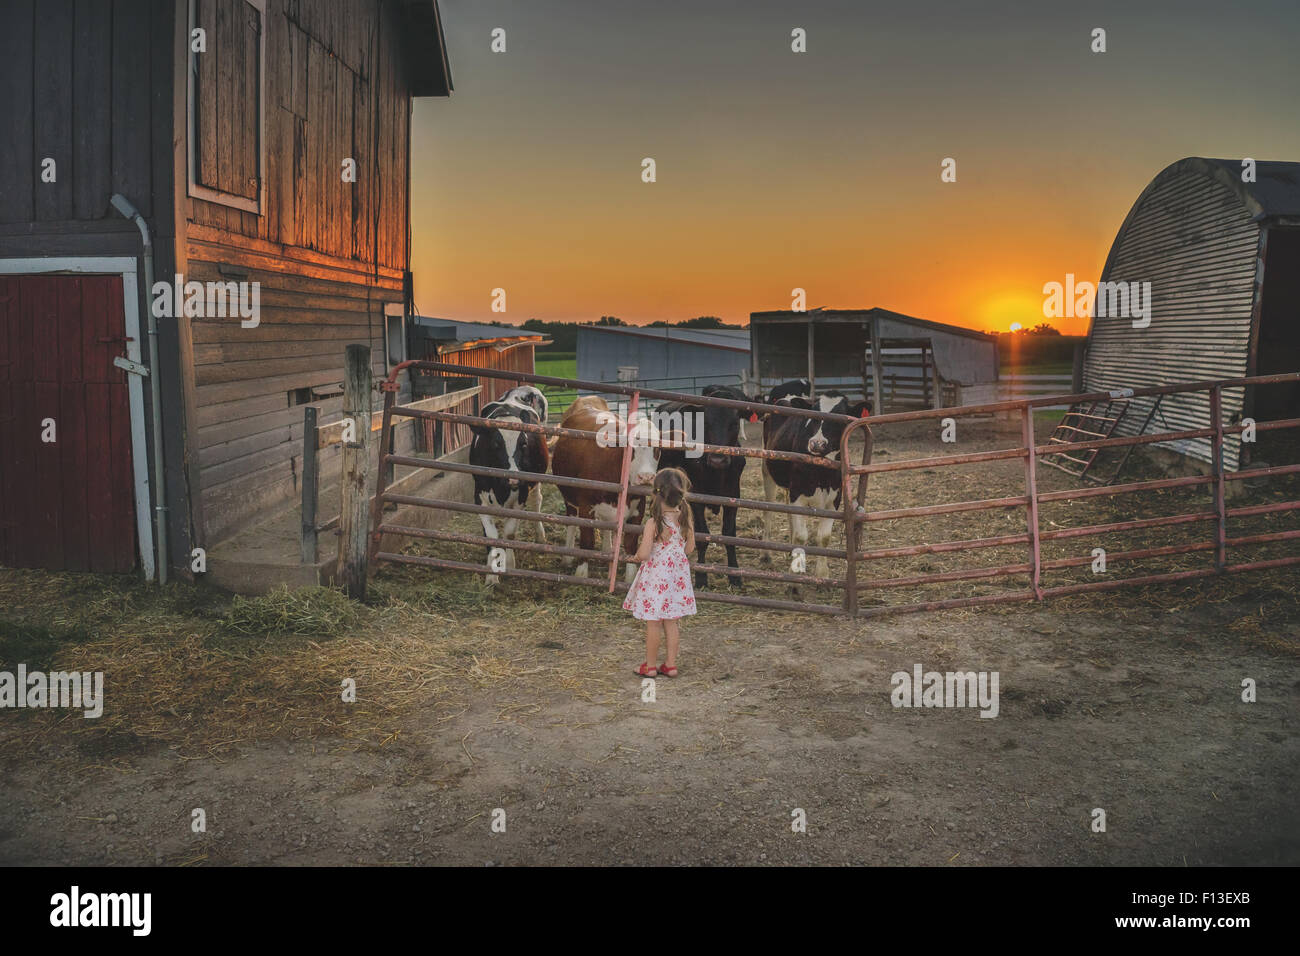 Girl standing in front of a pen with four cows - Stock Image